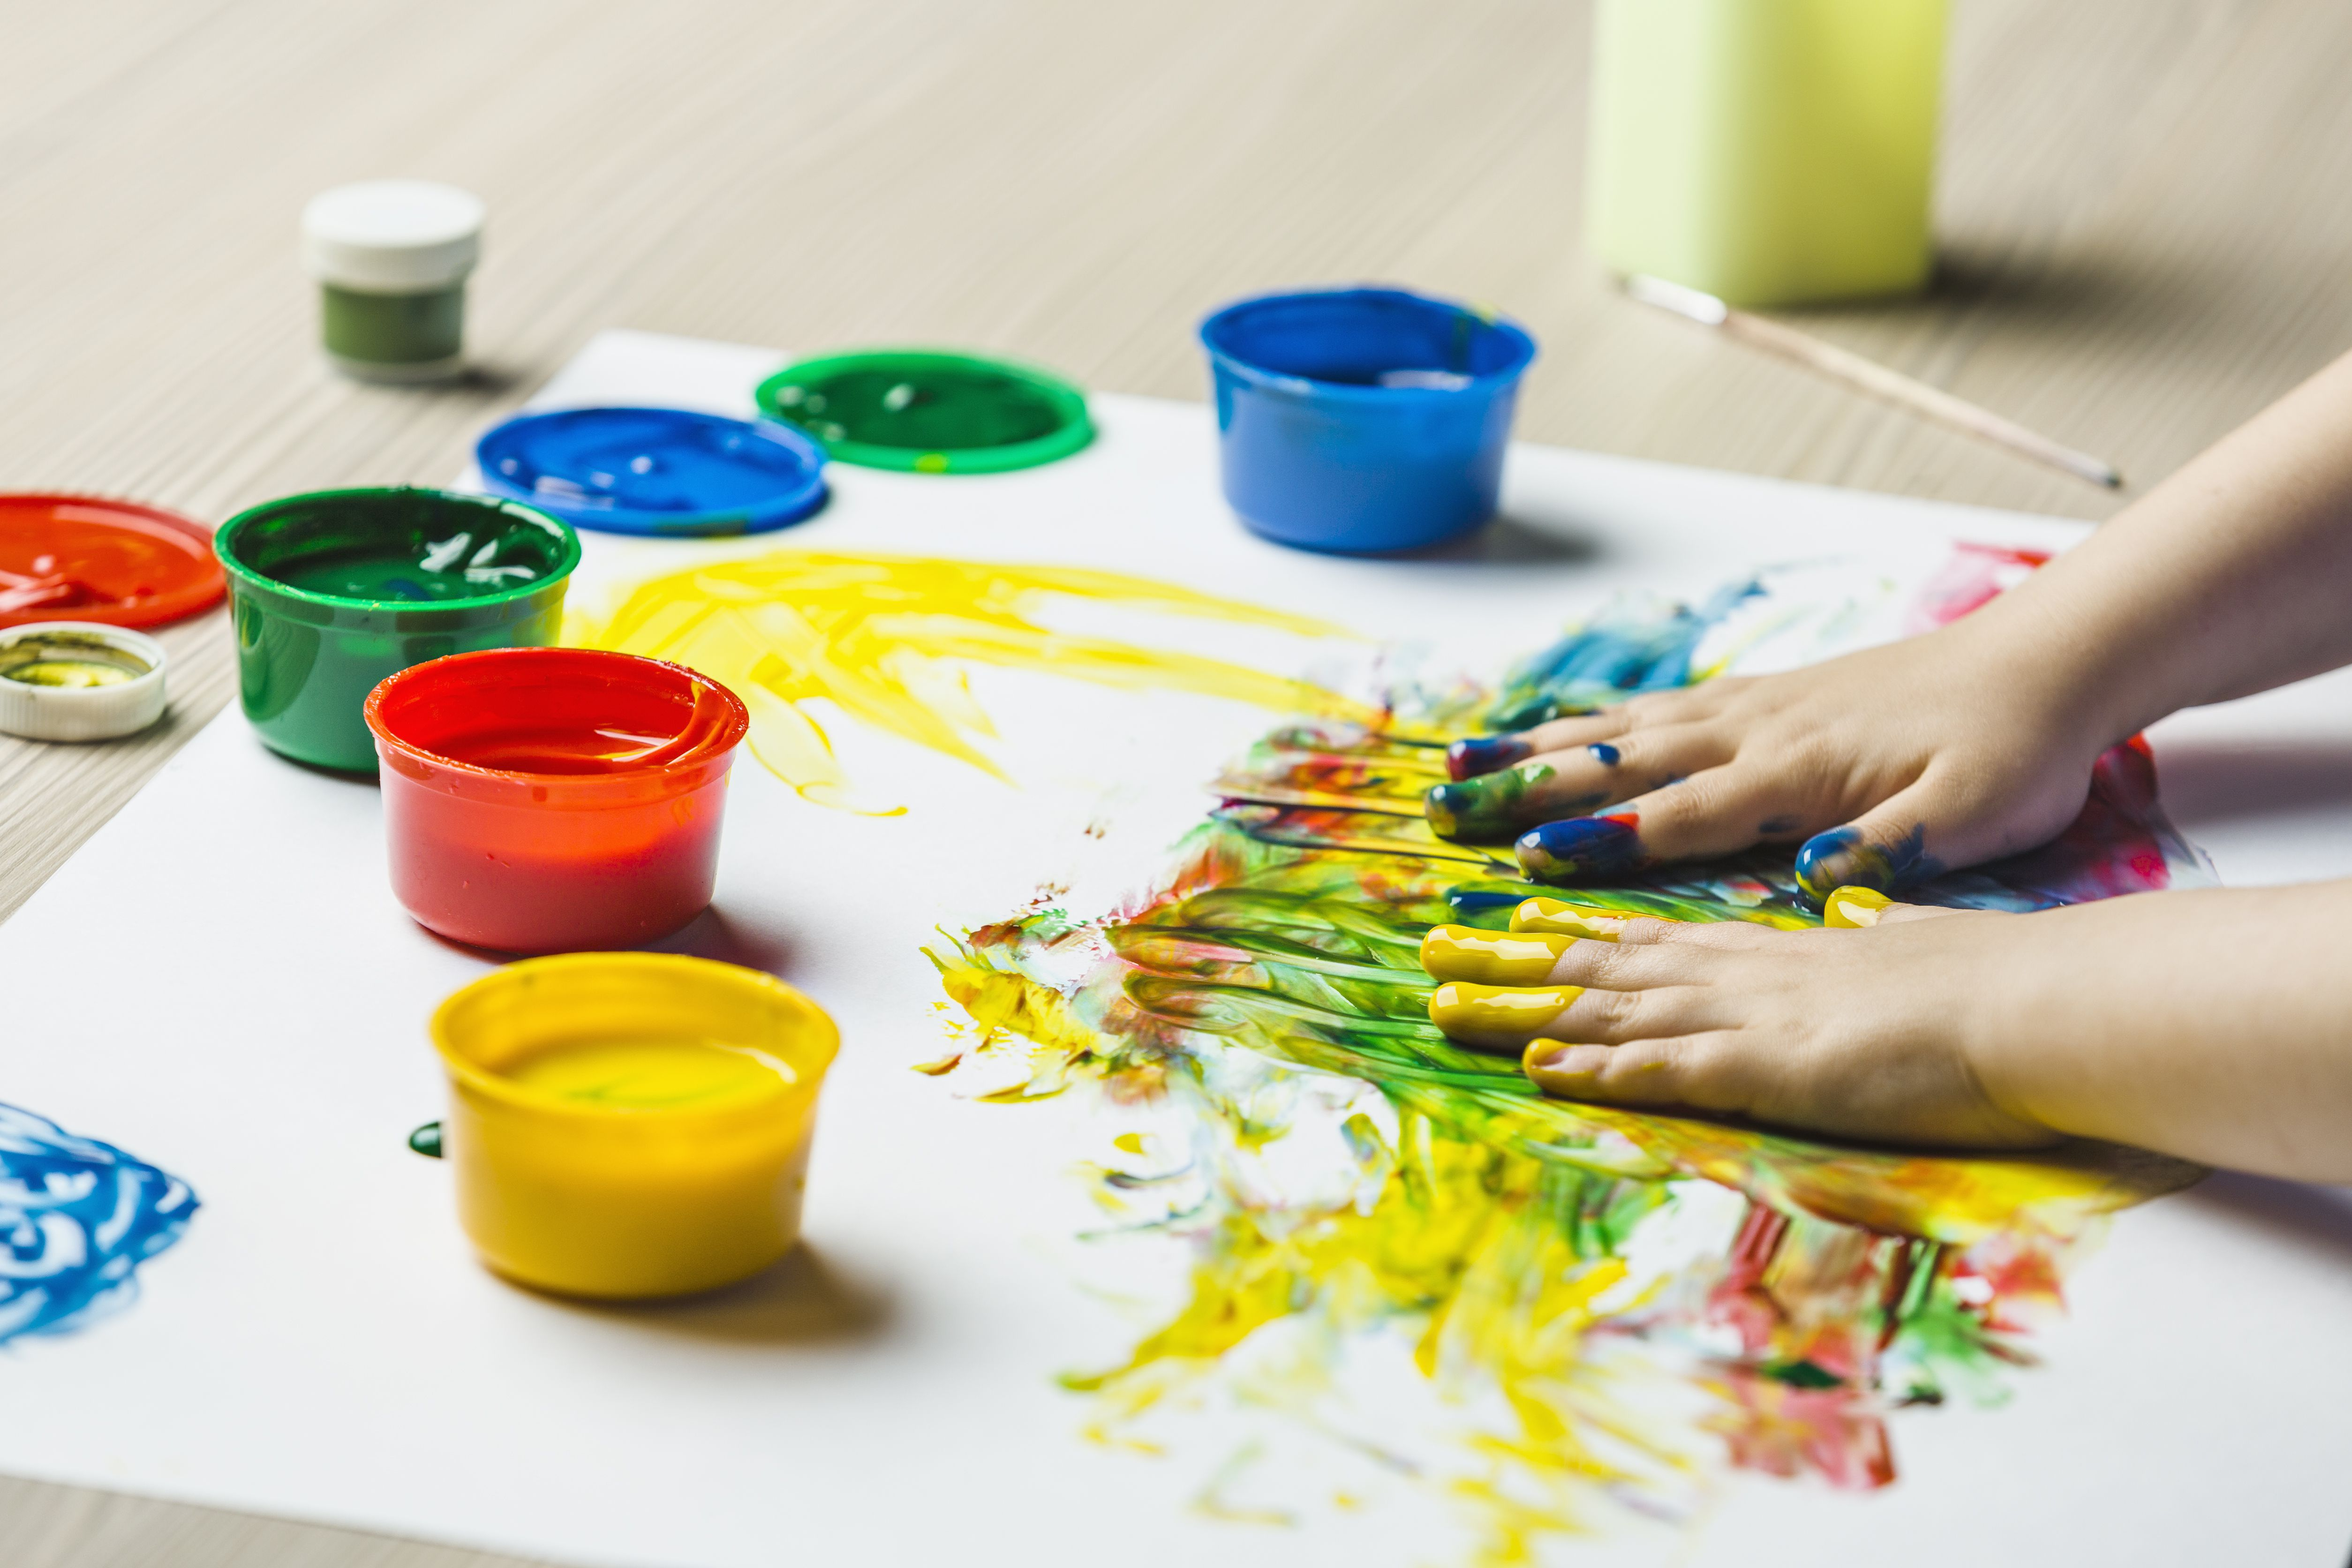 A child's hands finger painting on drawing paper